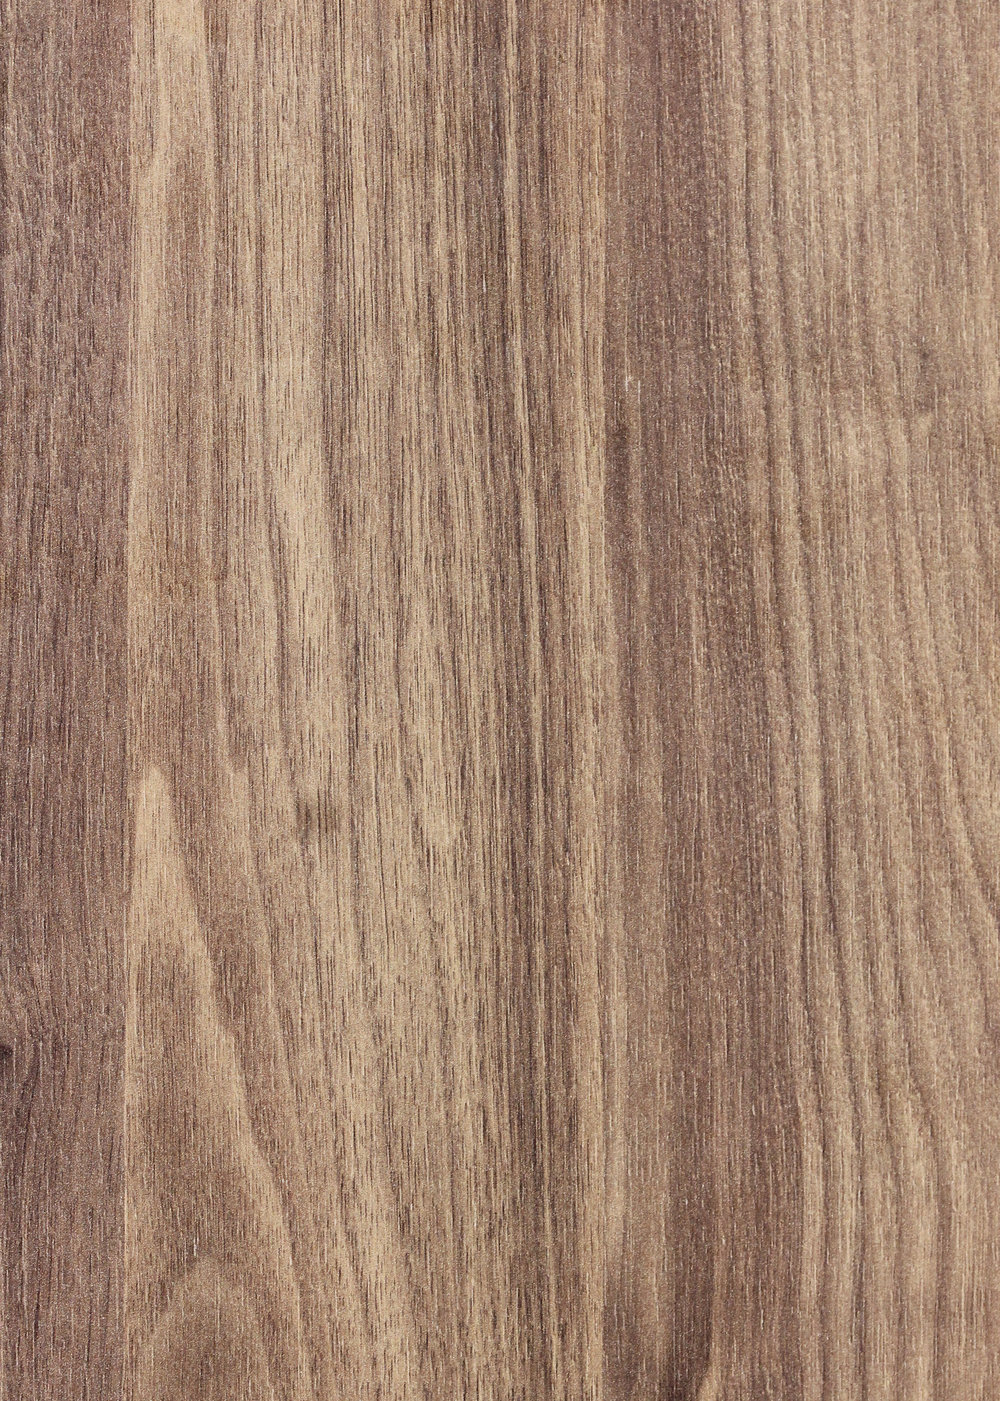 NO -222  Dark Select Walnut  - 22 x 1 mm